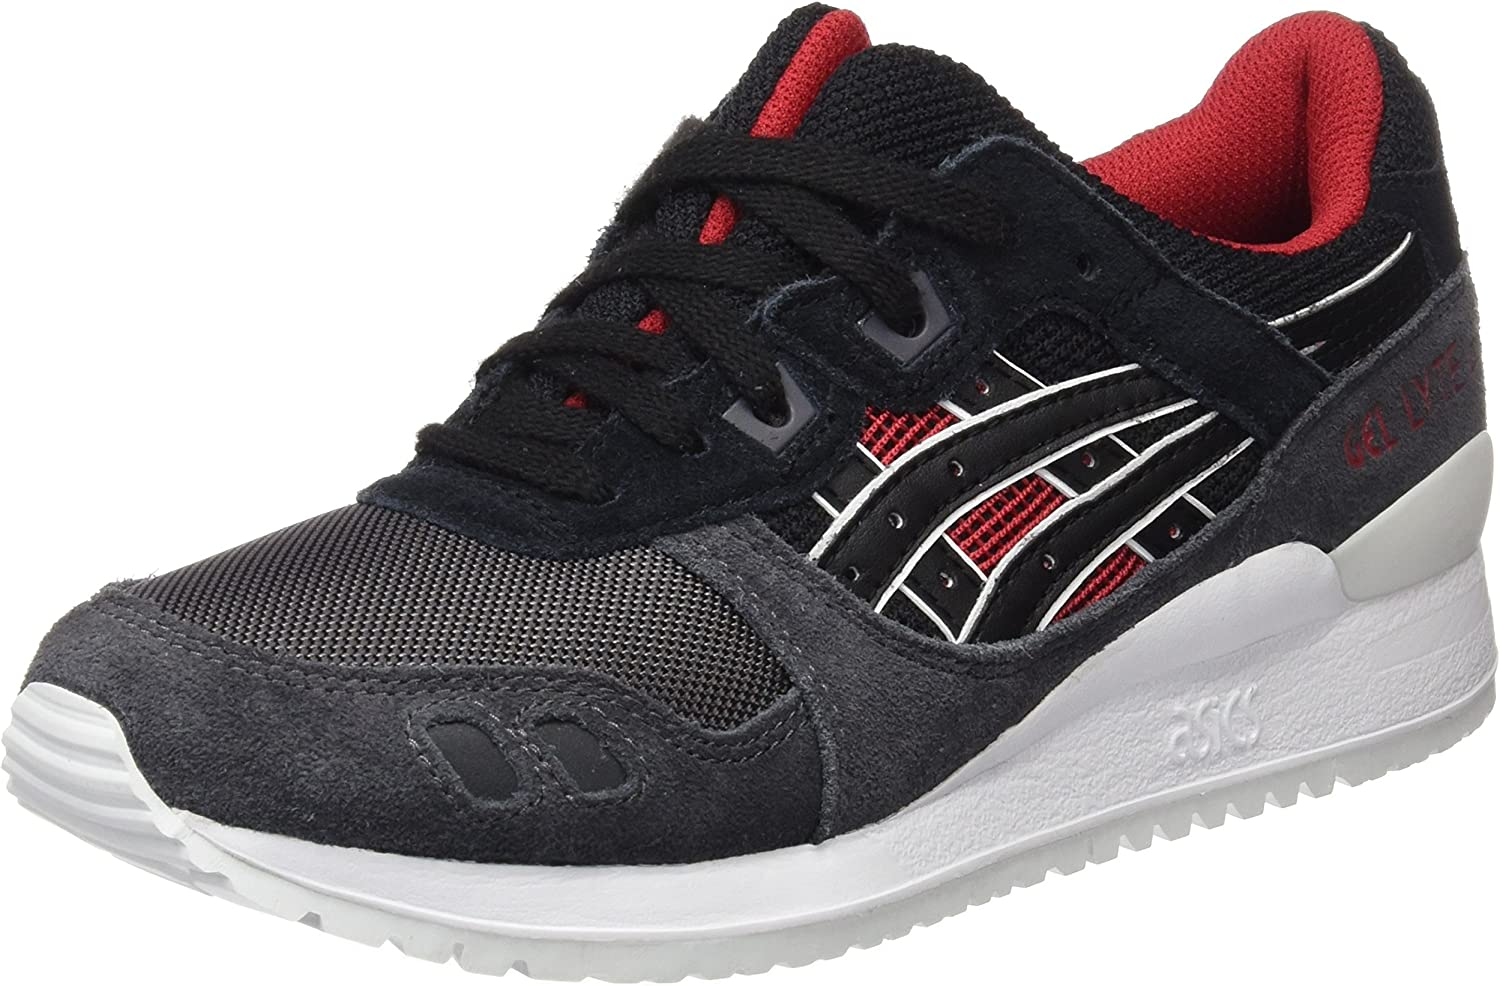 ASICS Unisex Adults' Gel-Lyte Iii Low-Top Sneakers